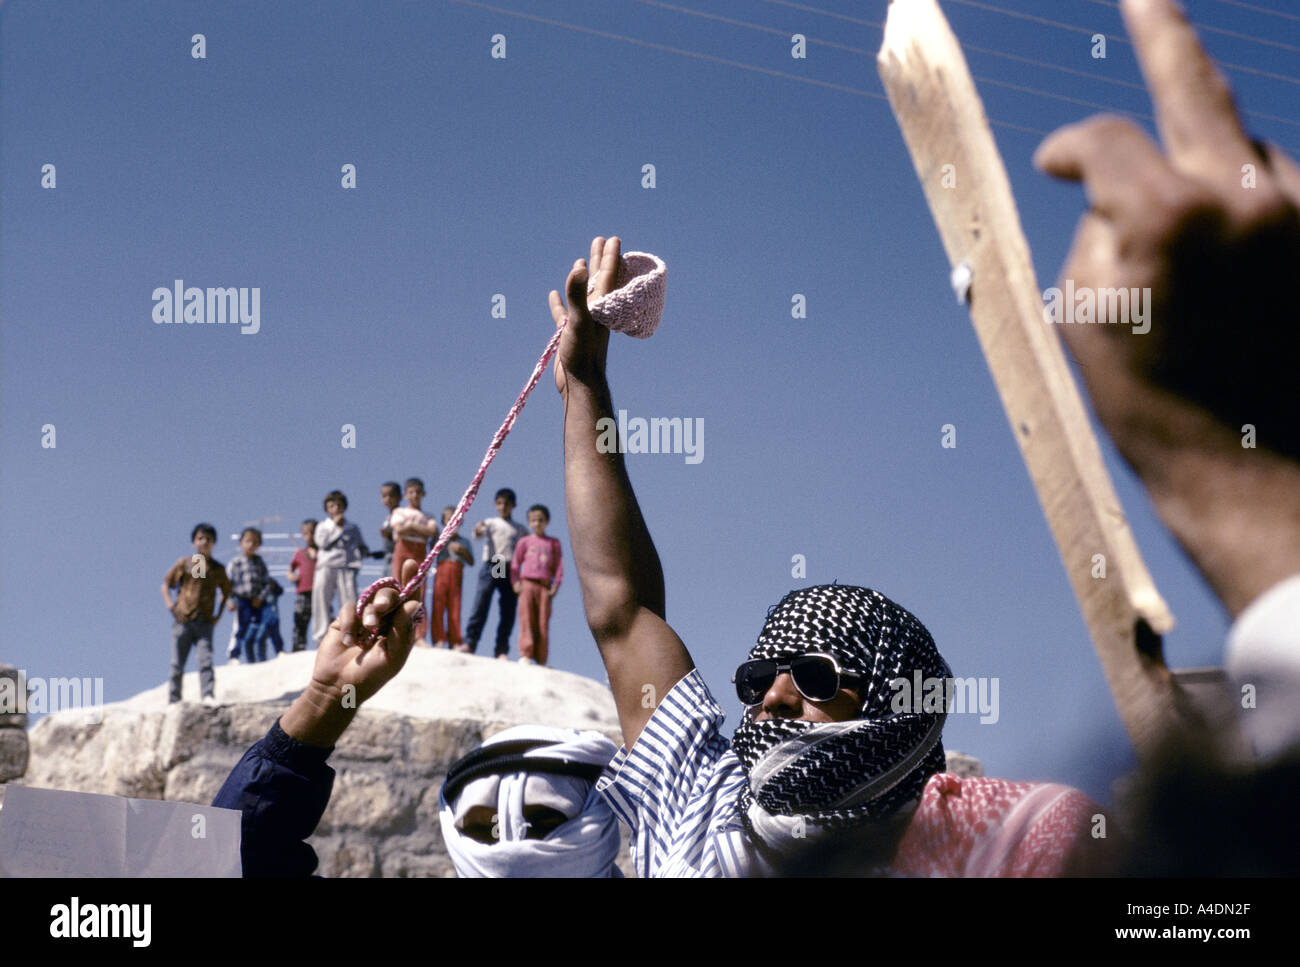 A palestinian intifada demonstration, Israel, 1988 - Stock Image